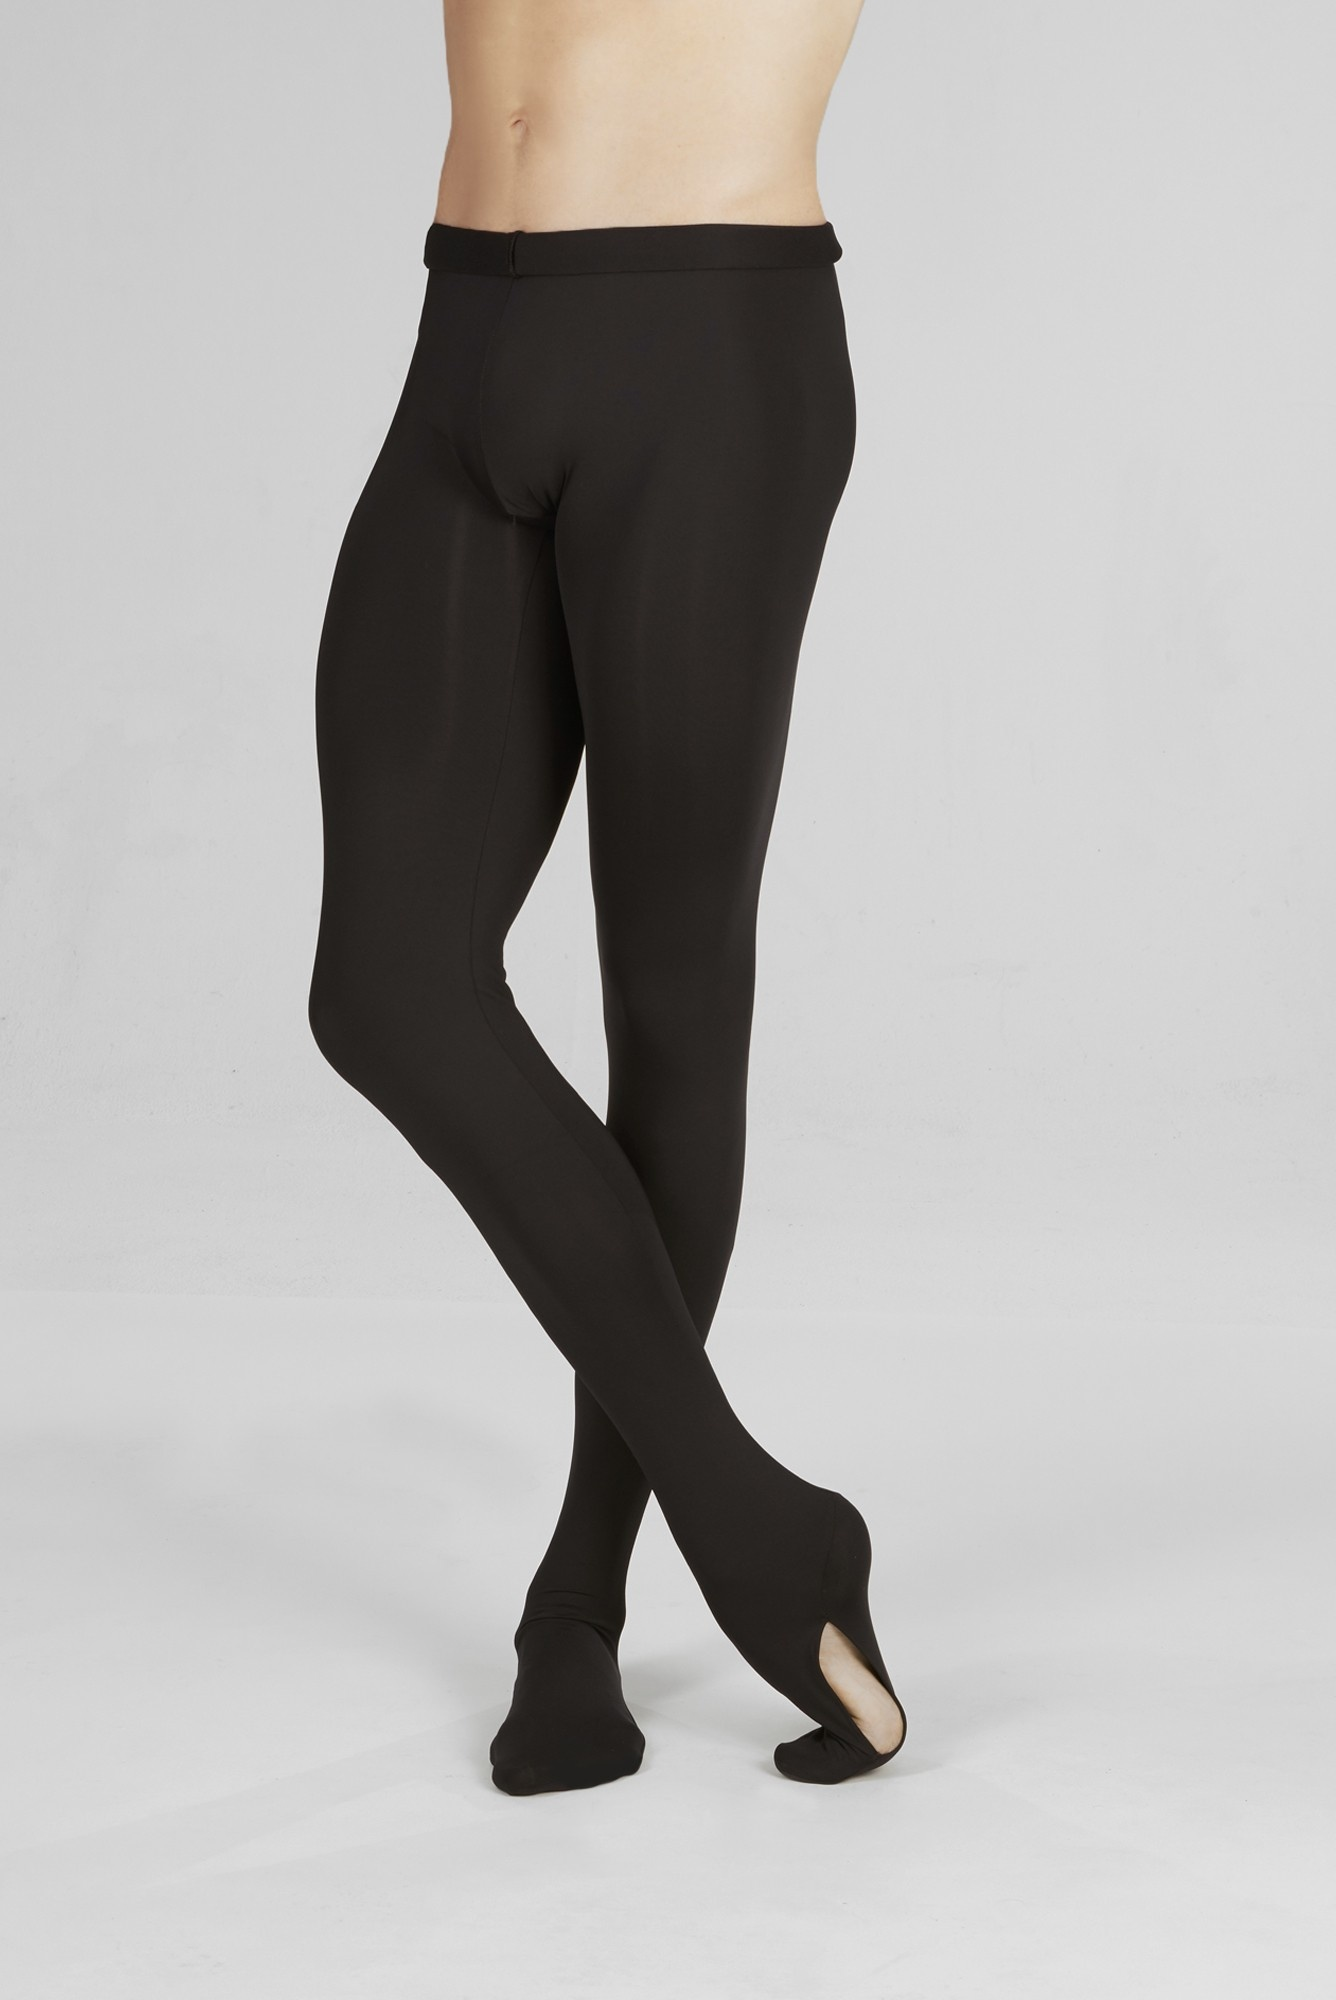 Wear Moi Mens Hidalgo Tight